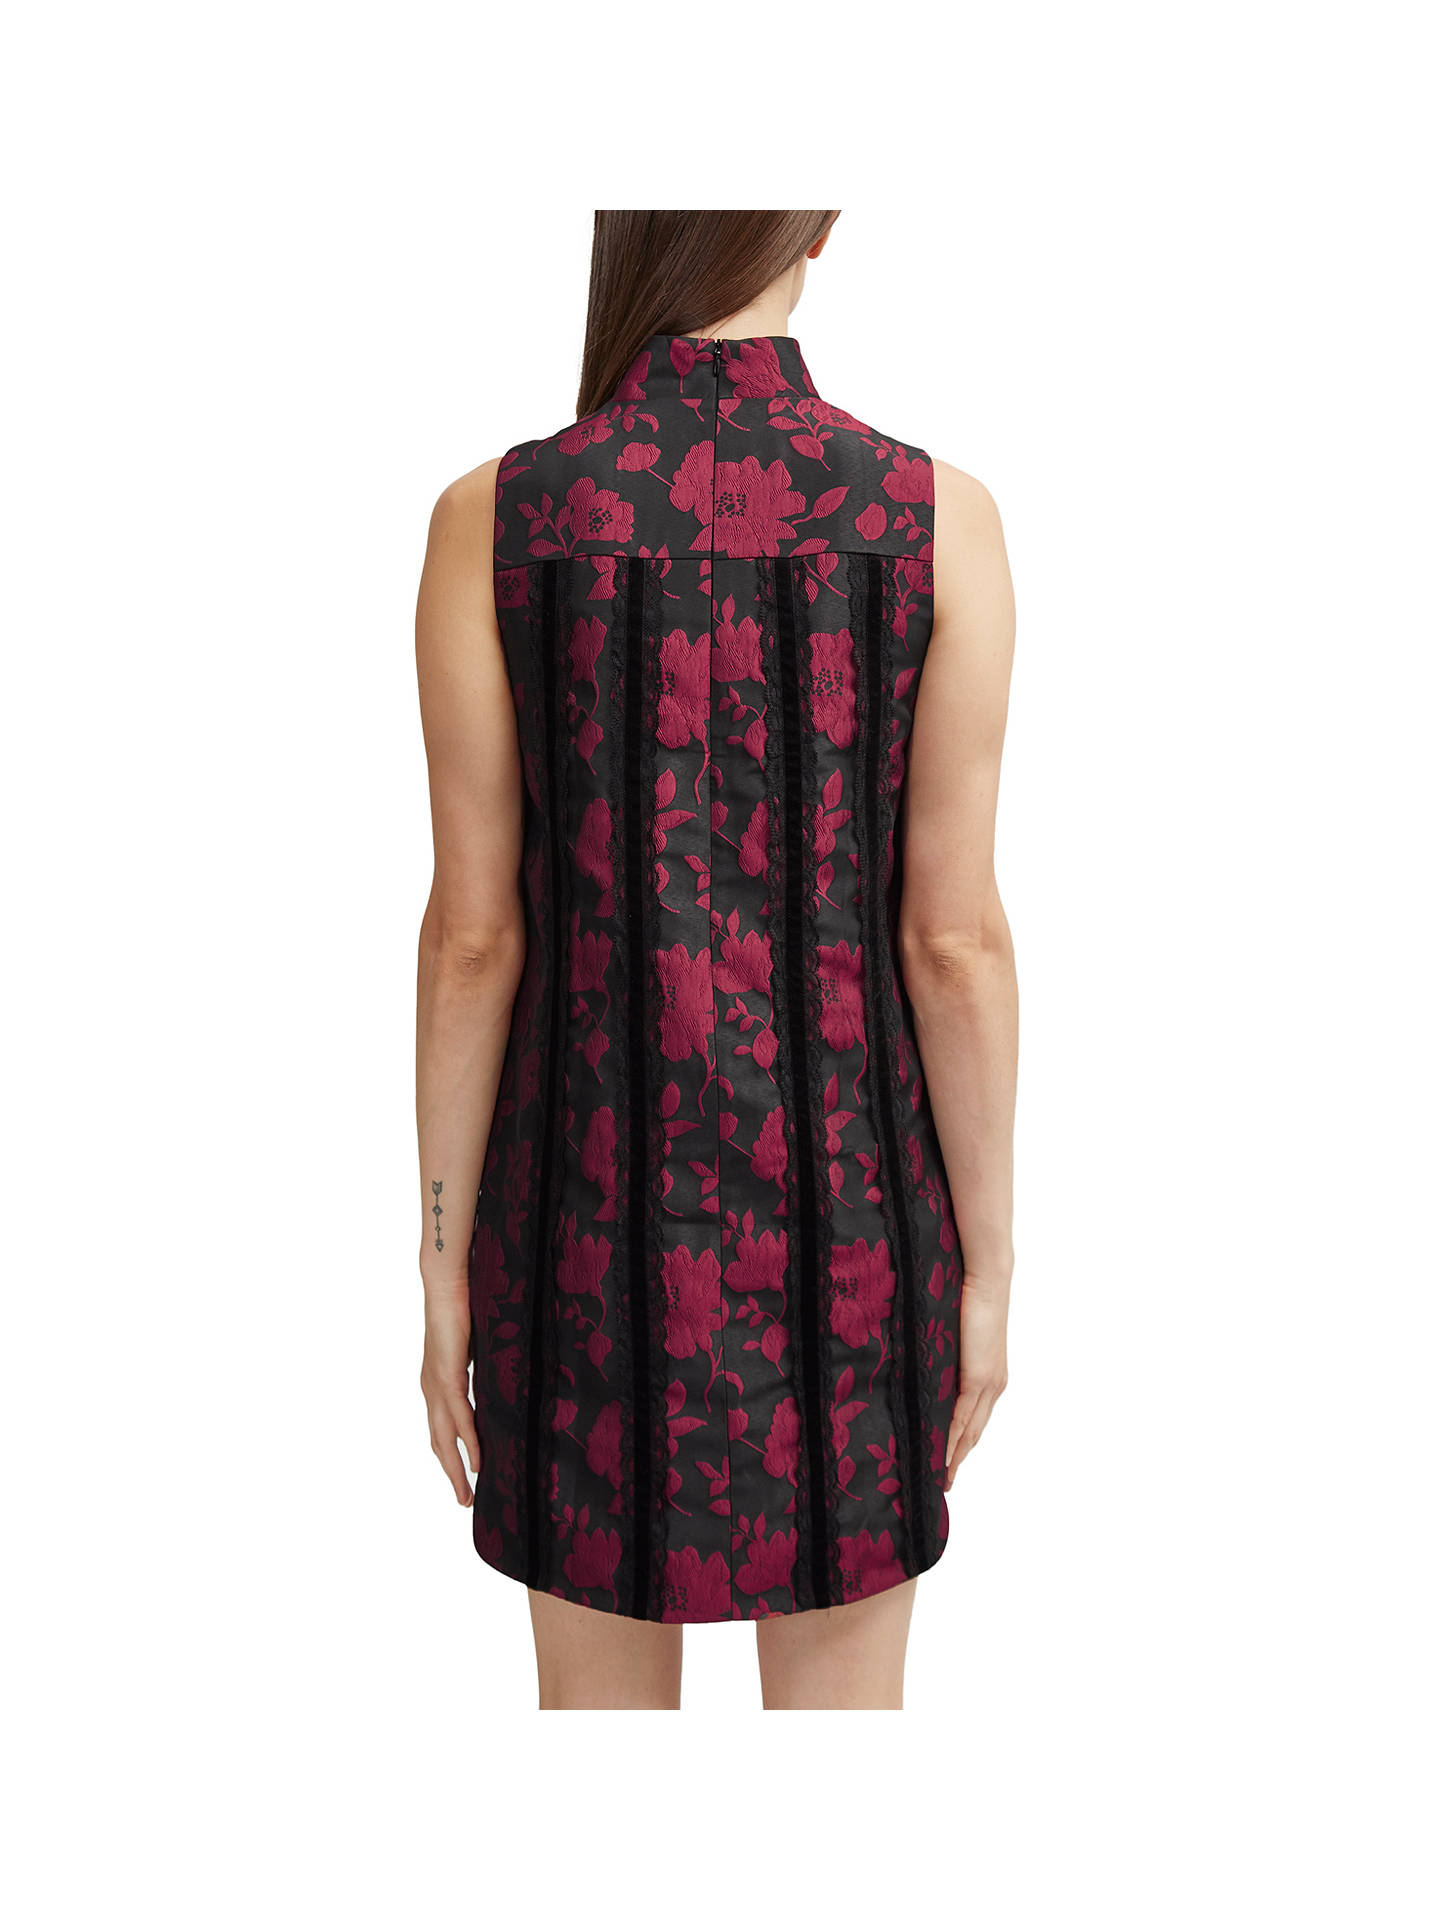 BuyFrench Connection Betty Brocade Tunic Dress, Multi, 6 Online at johnlewis.com